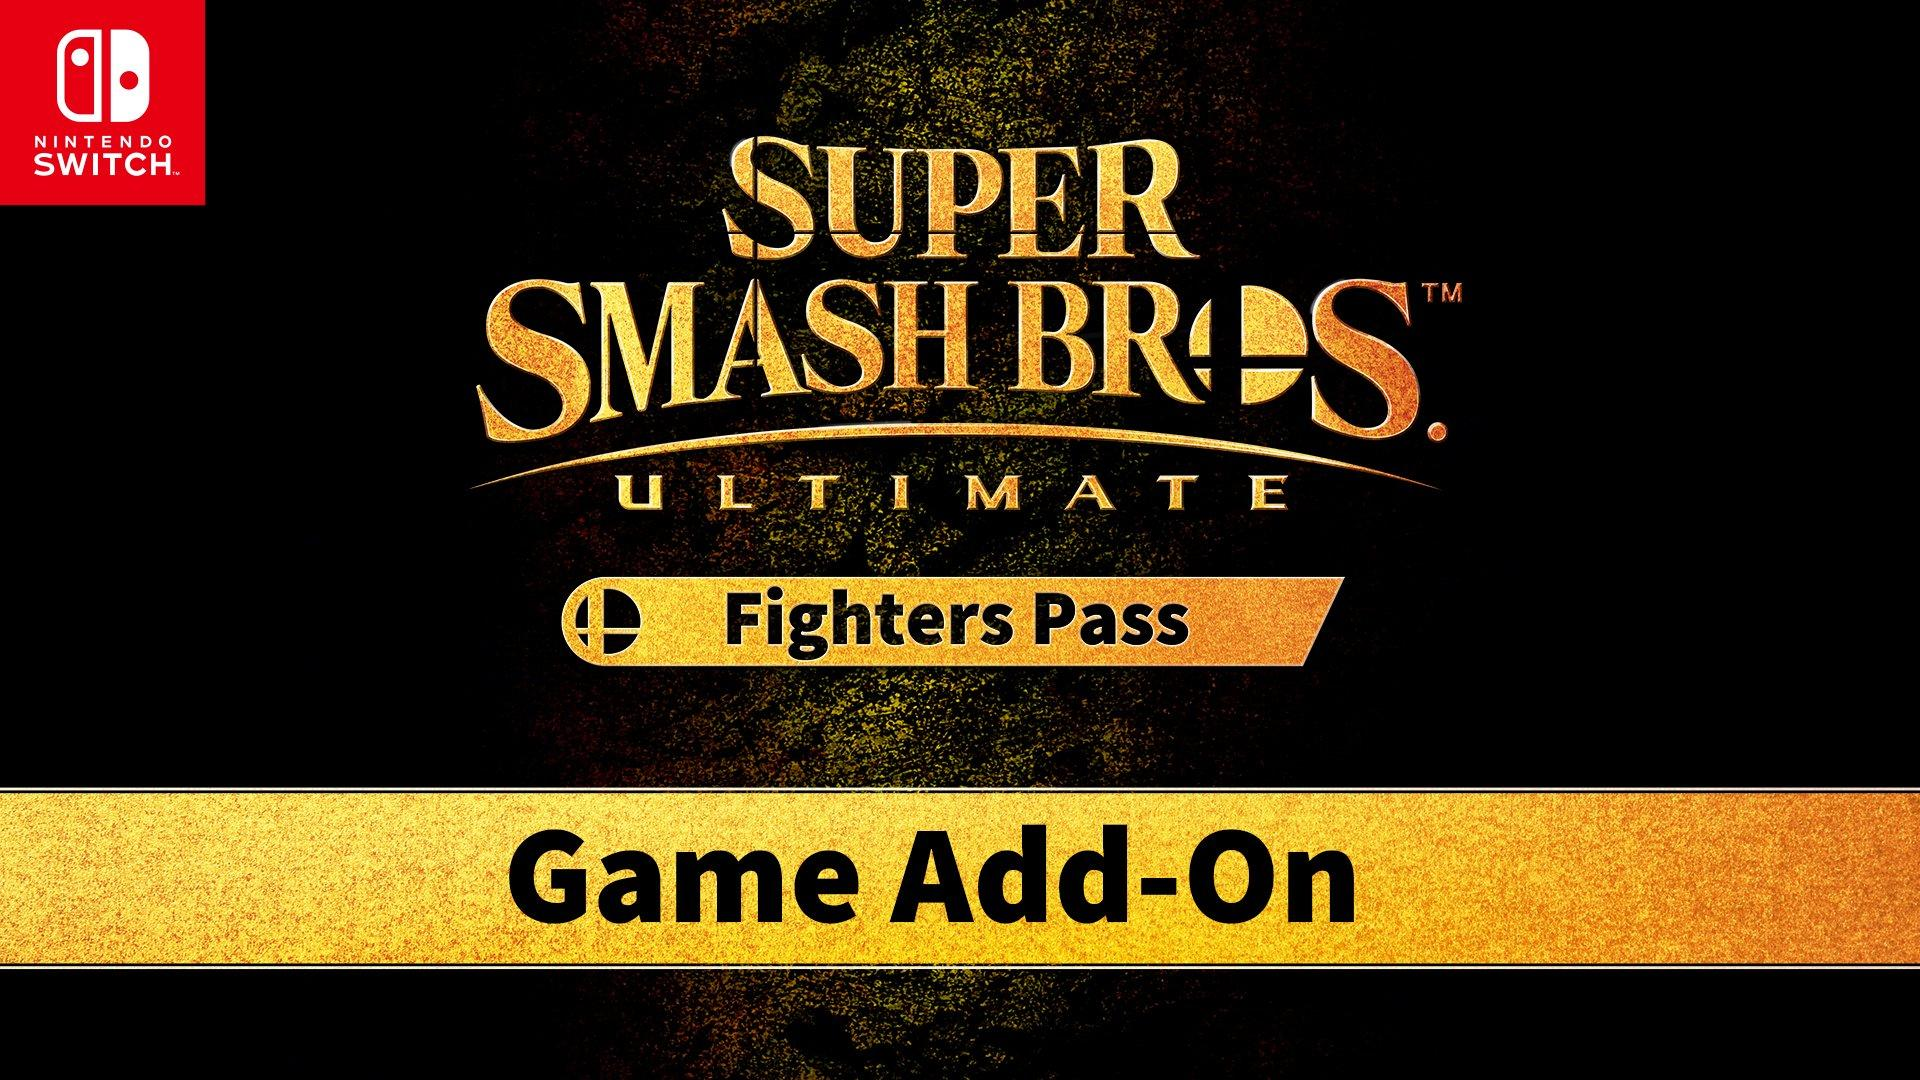 """Nintendo on the rise of digital sales, Smash Bros. Ultimate Fighters Pass made """"huge contribution"""""""